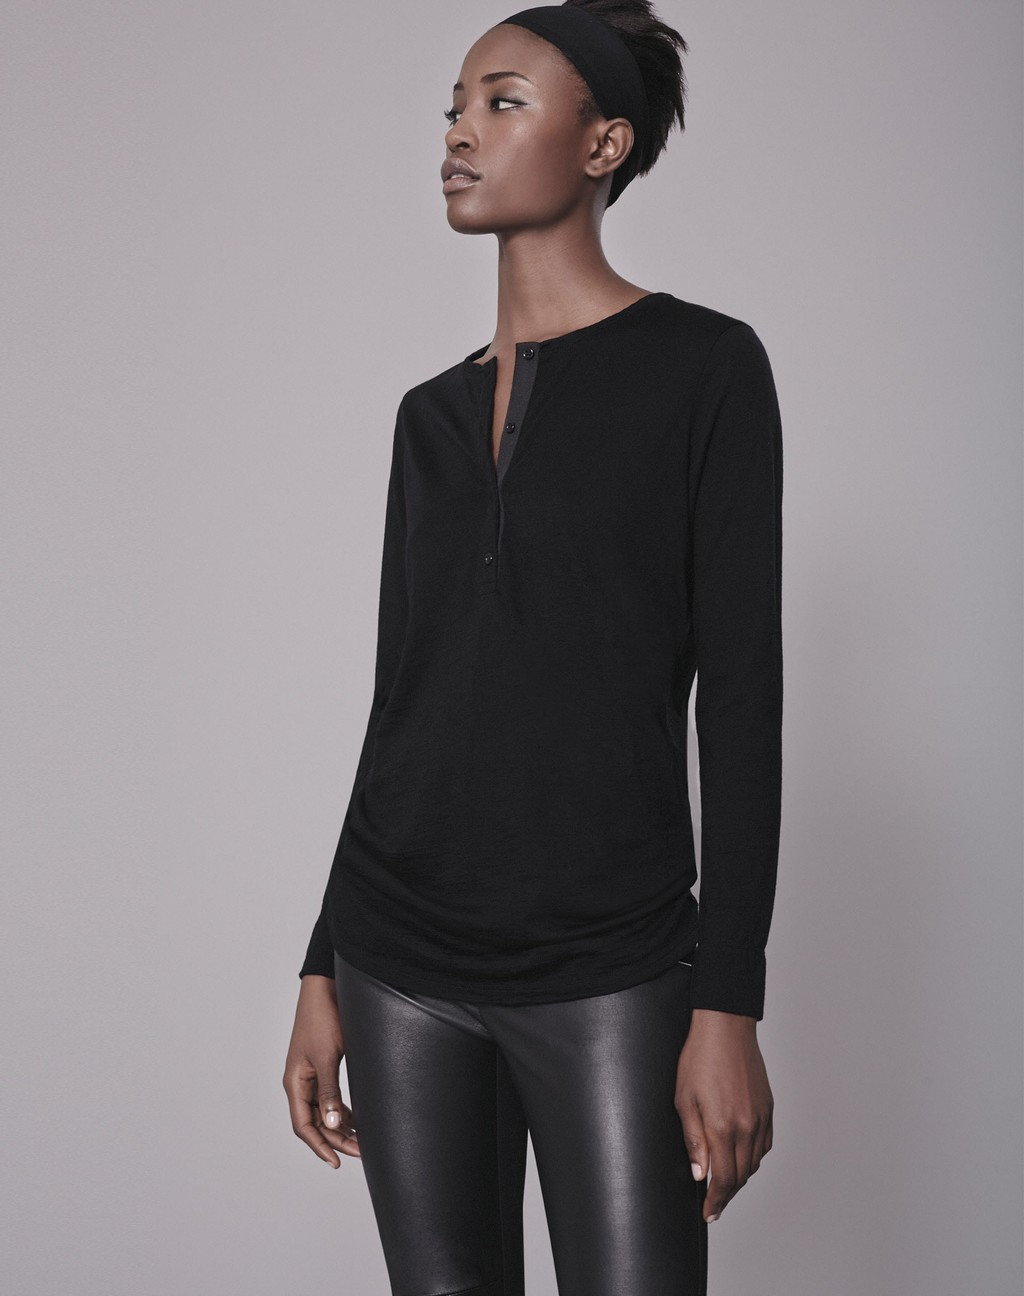 Luxe Henley Tee Black - neckline: v-neck; pattern: plain; predominant colour: black; occasions: evening; length: standard; style: top; fibres: wool - 100%; fit: body skimming; sleeve length: long sleeve; sleeve style: standard; pattern type: fabric; texture group: jersey - stretchy/drapey; season: a/w 2016; wardrobe: event